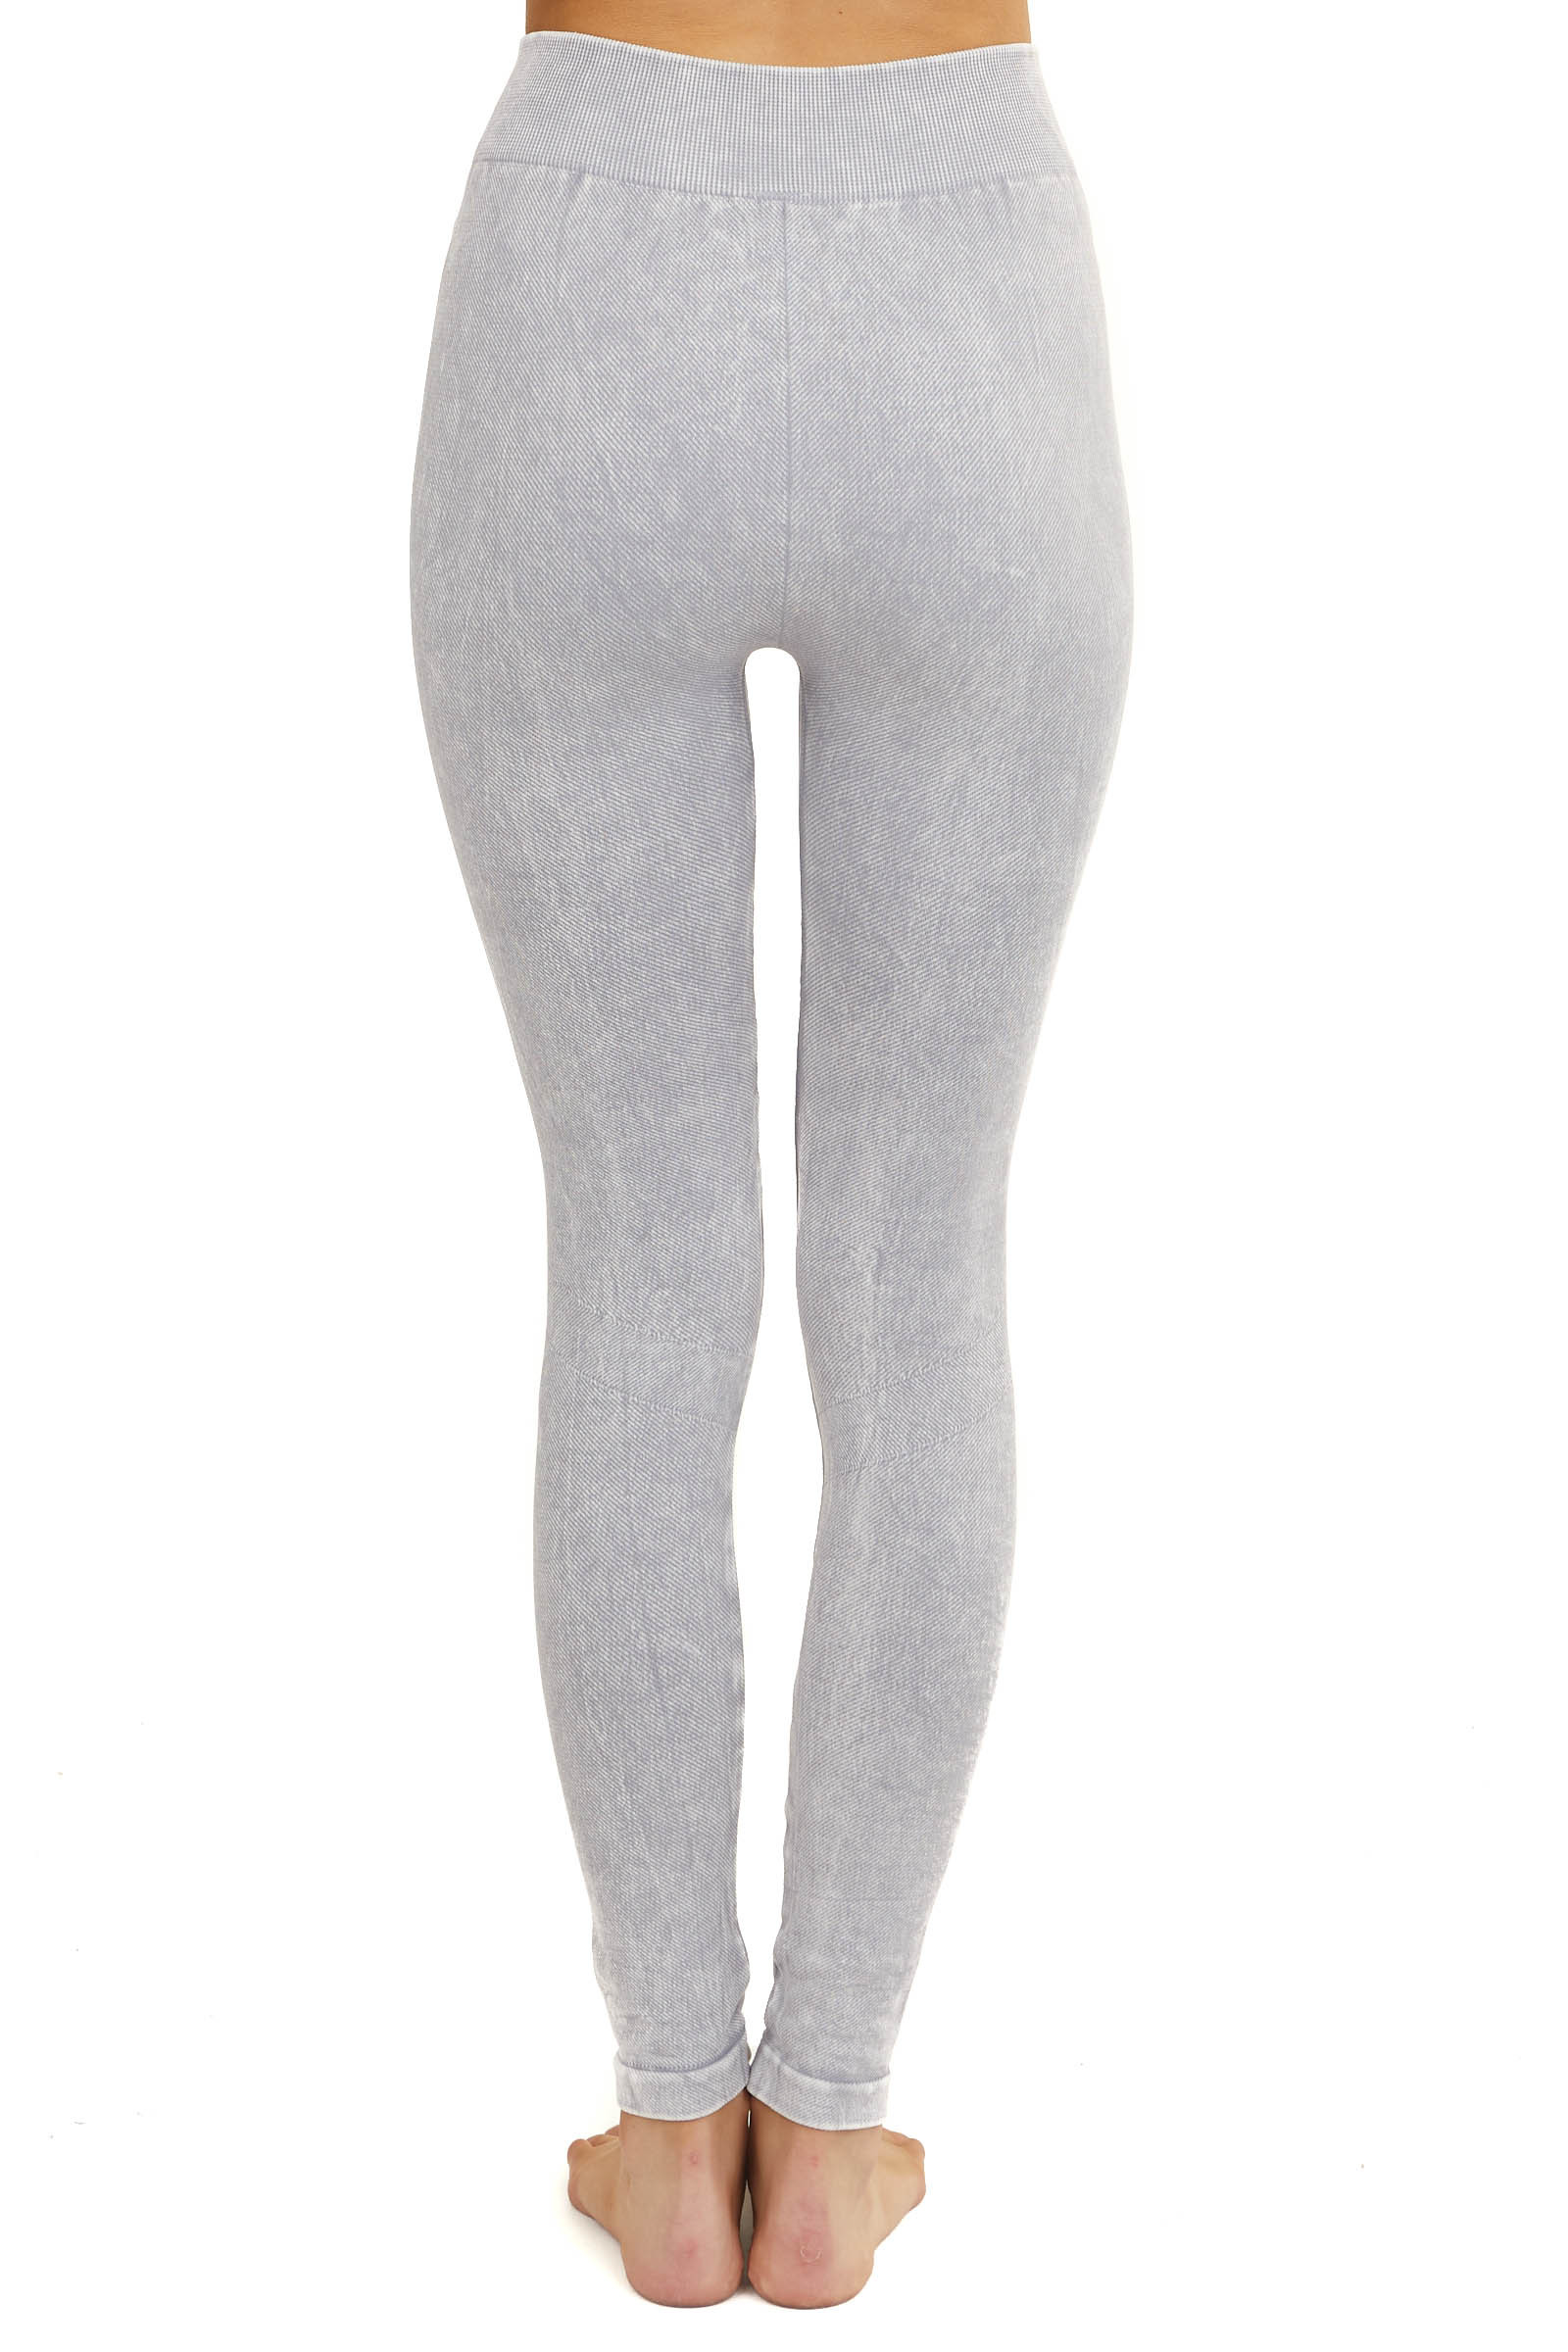 Faded Dove Grey Moto Leggings with Distressed Details